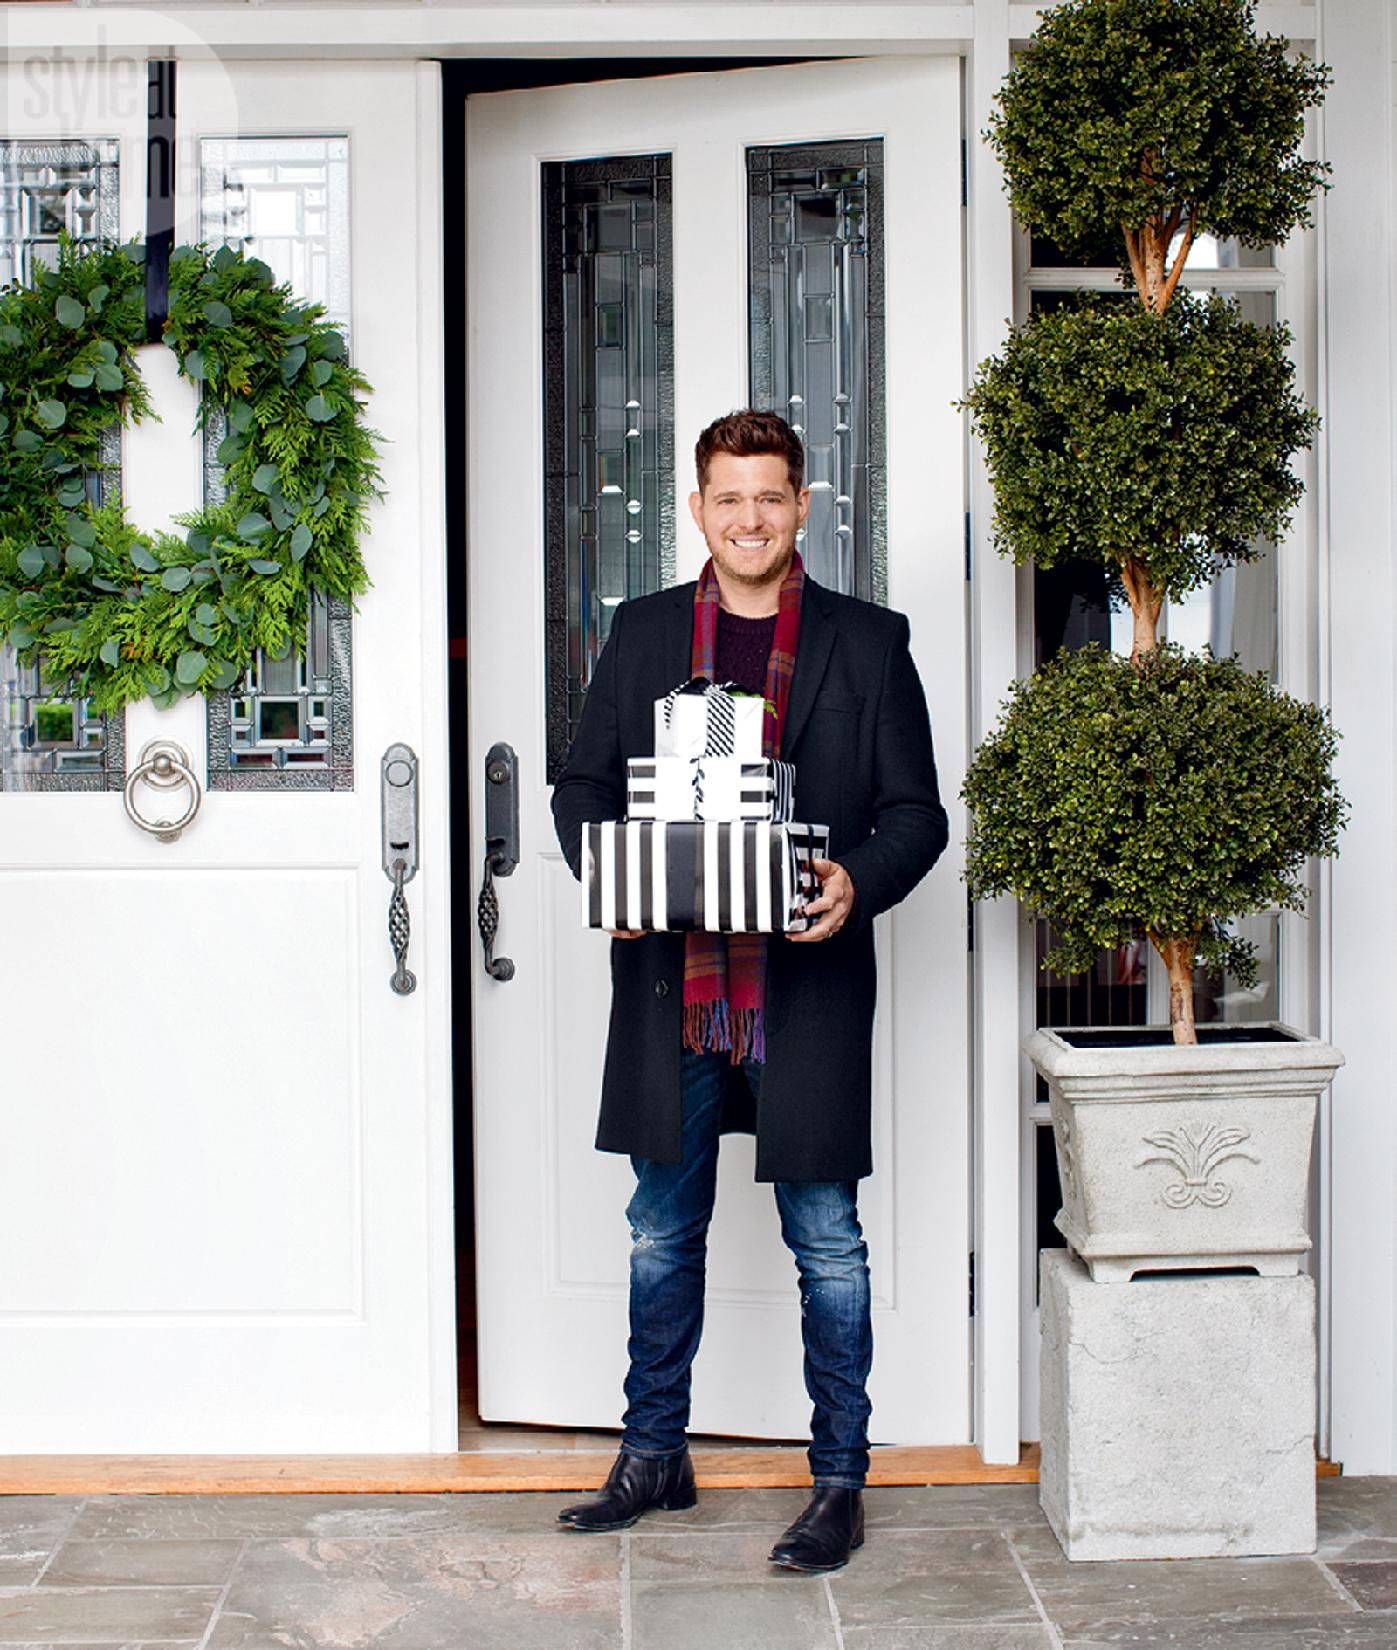 Swoon Worthy Christmas House Tour: Michael Buble Take Us Inside His Stylish Holiday Home